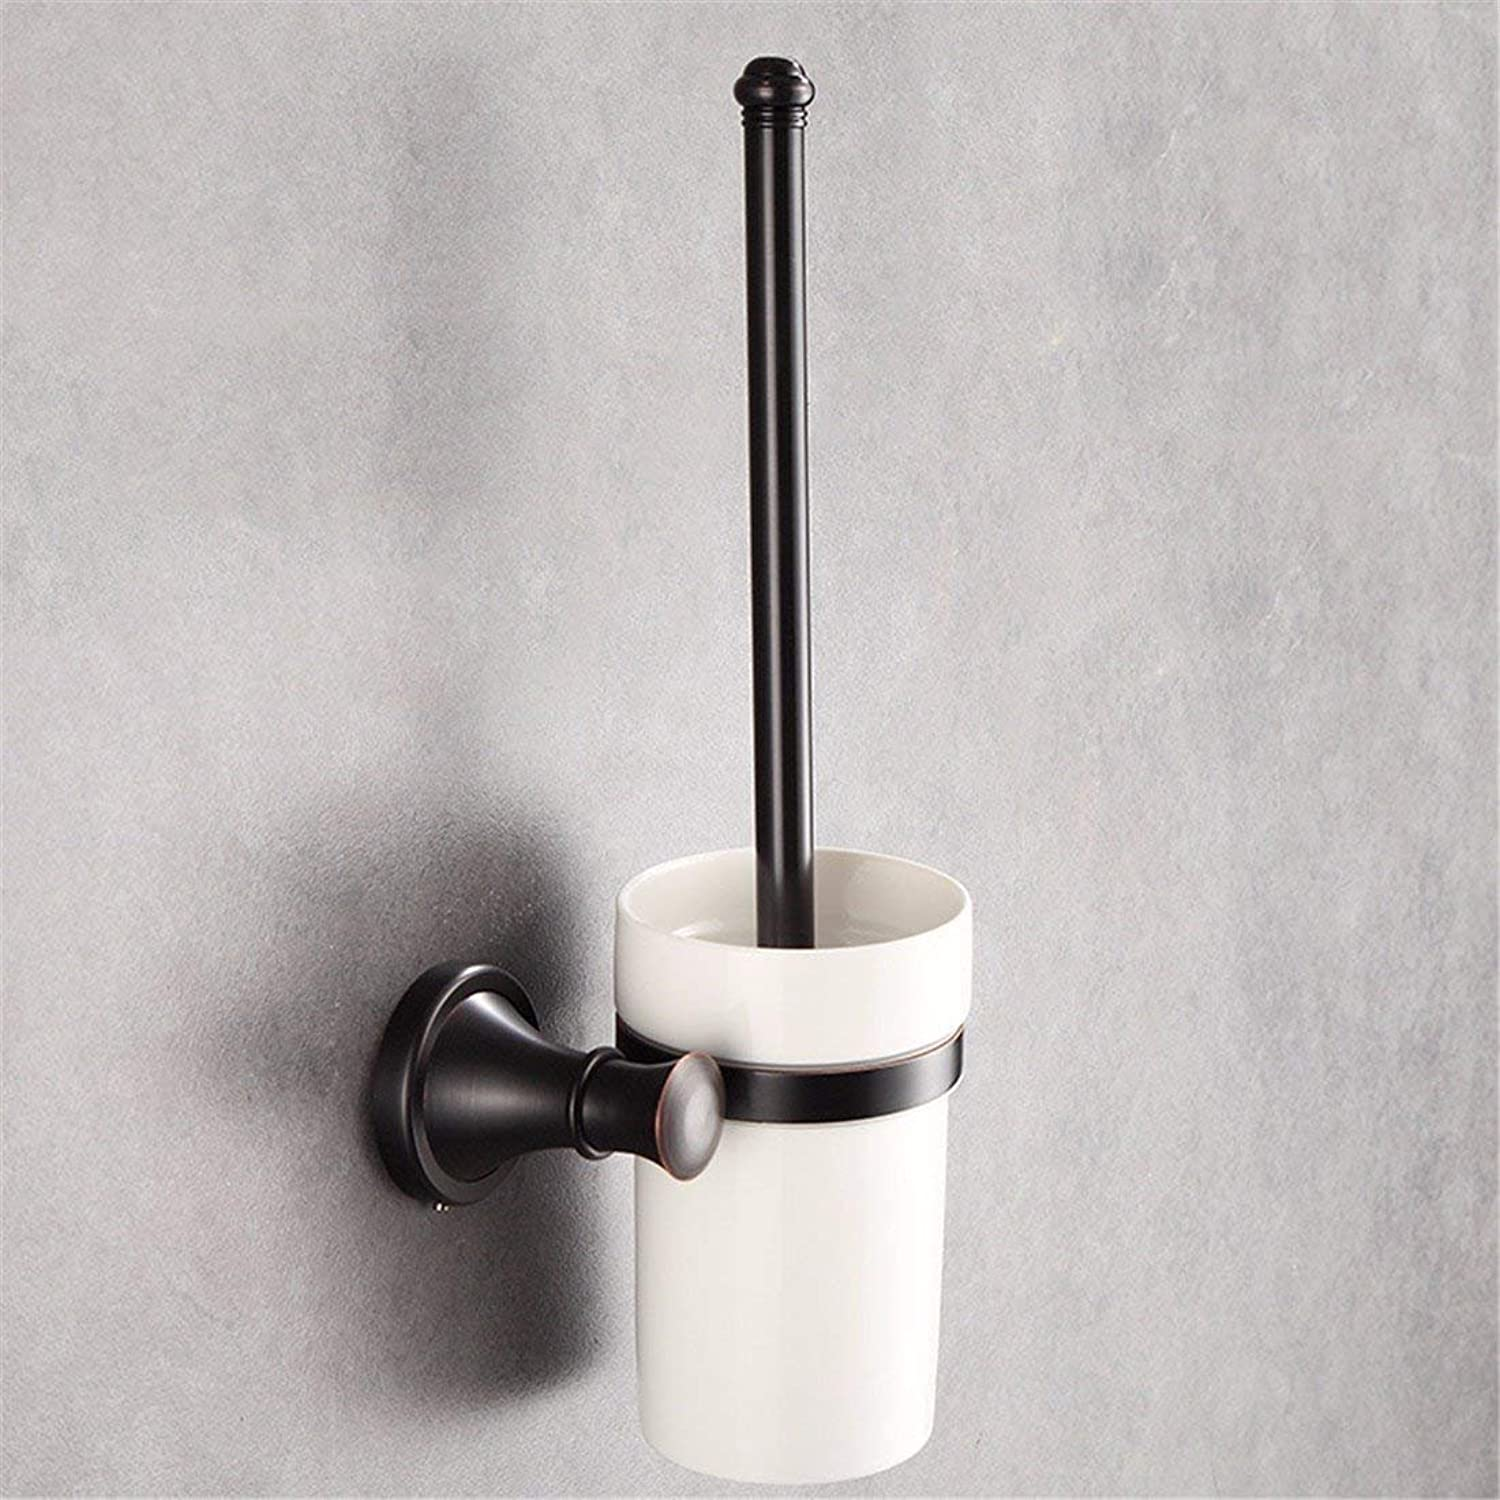 Accessories for Bathroom European American Copper Black Costume Accessories of Baths Dry-Towels,Toilet Brush